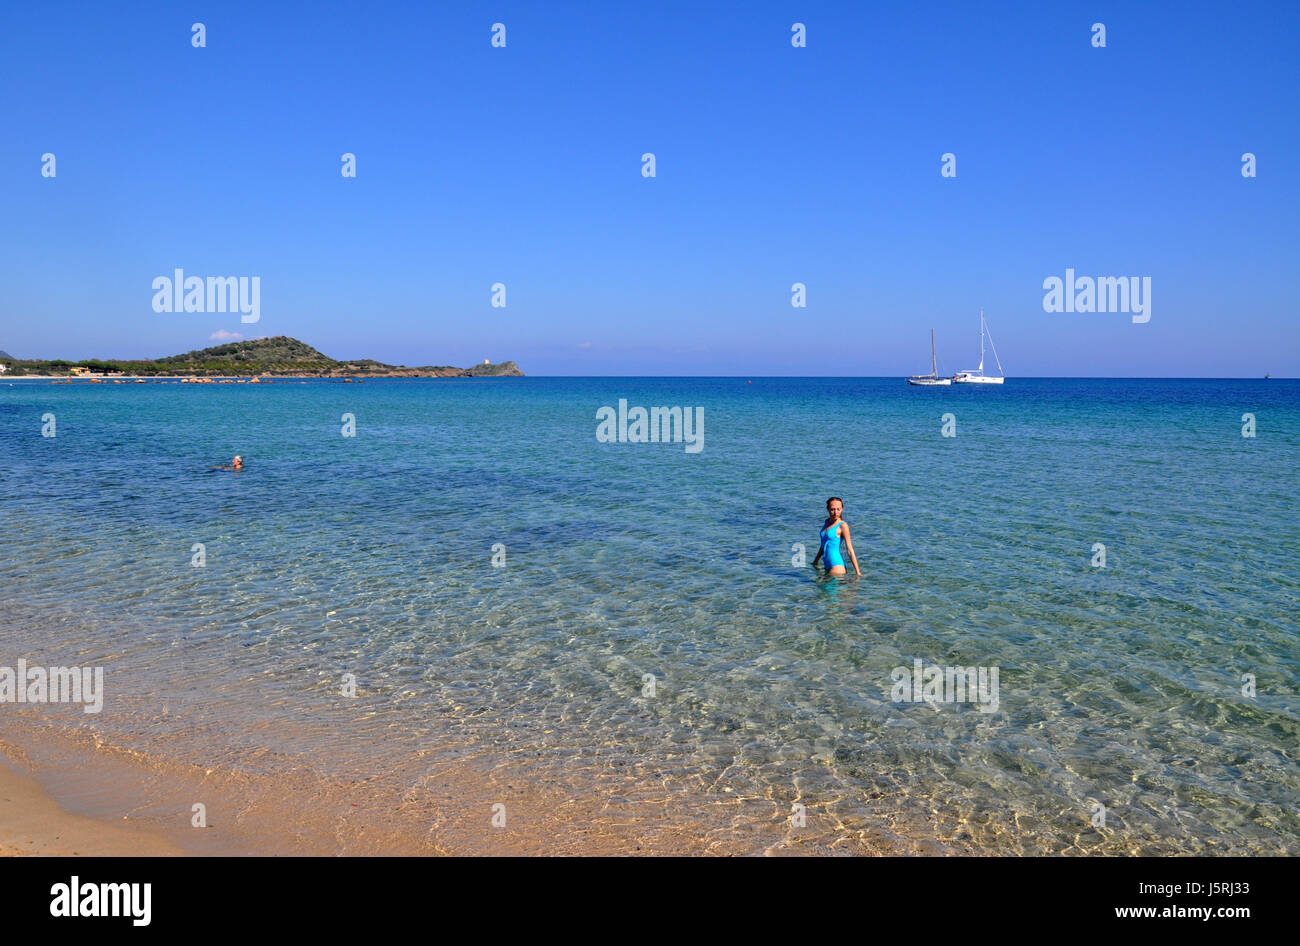 Young woman standing in transparent blue watersof the Mediterranean sea  with white sailing boats on Nora beach - Stock Image